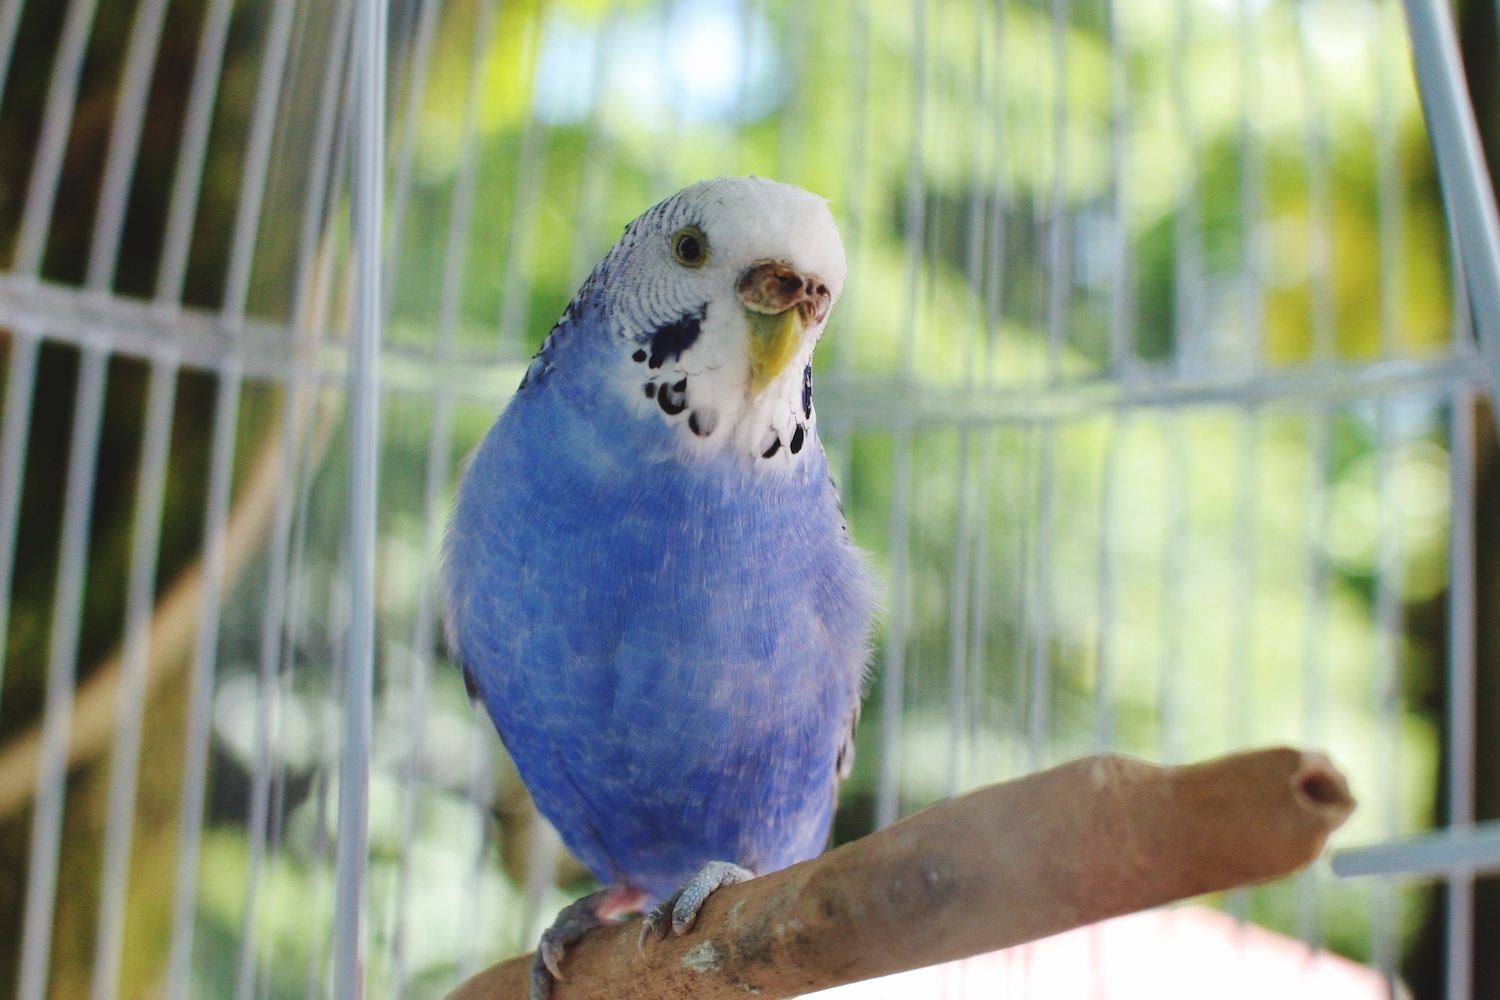 blue budgie in a cage